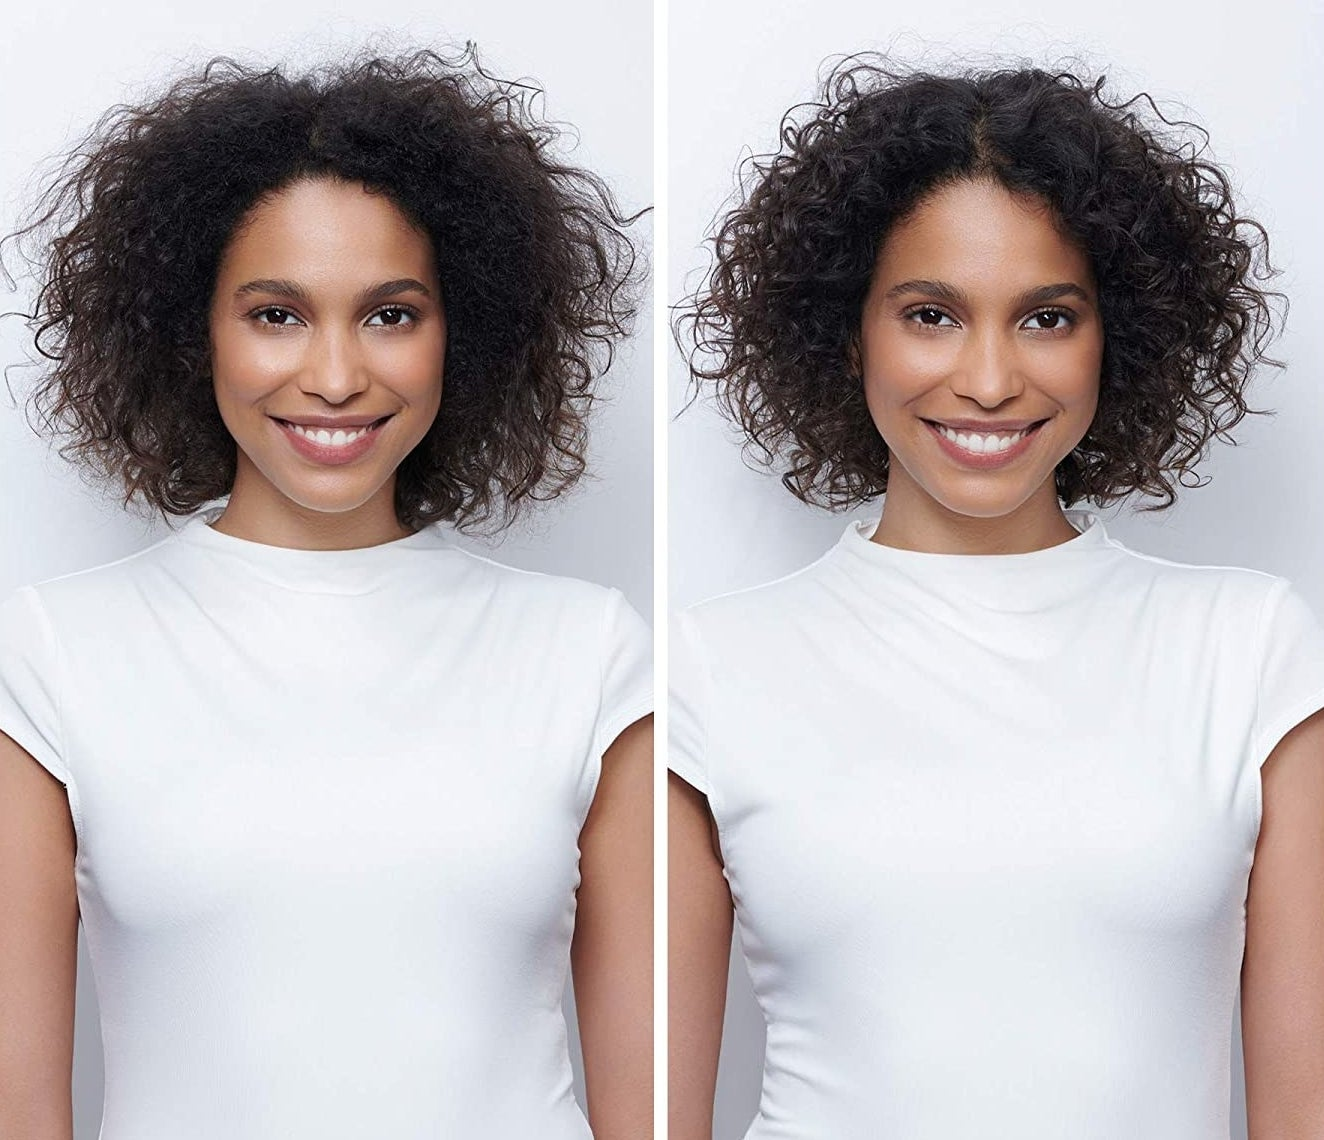 A model before and after using the product, with their curls looking more styled and defined